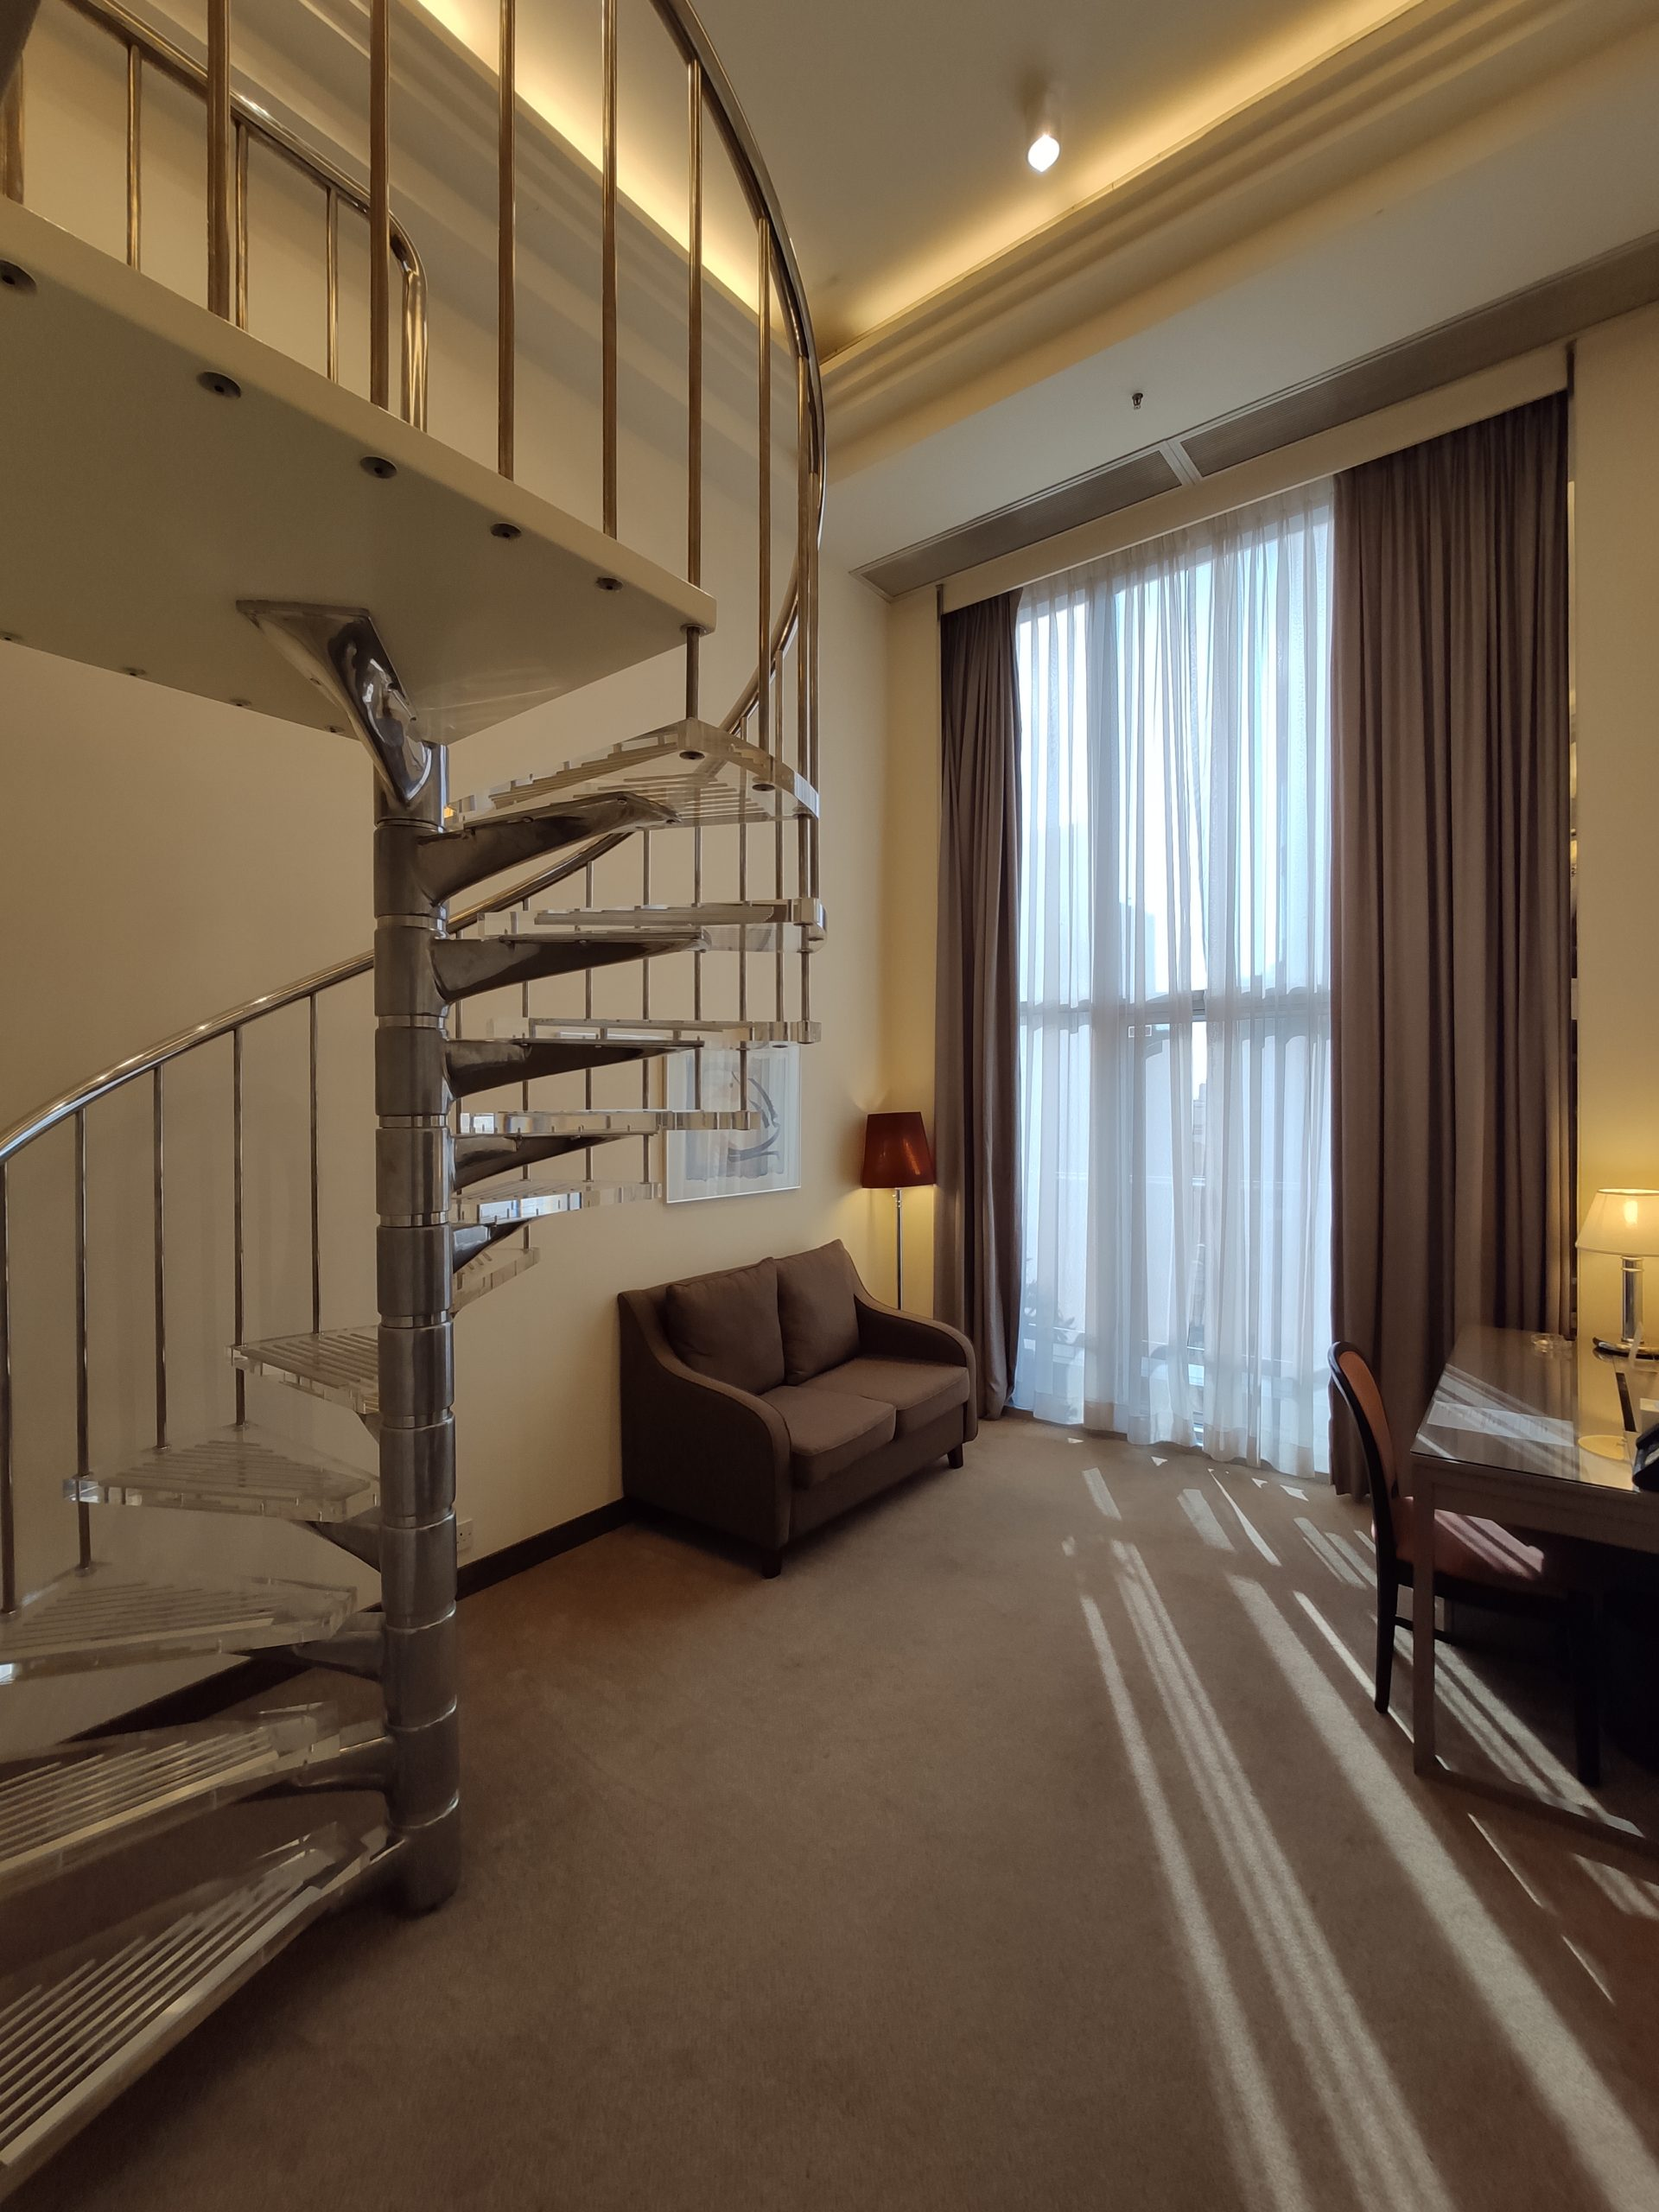 [Review] Prudential Hotel (Duplex Suite) @ Hong Kong